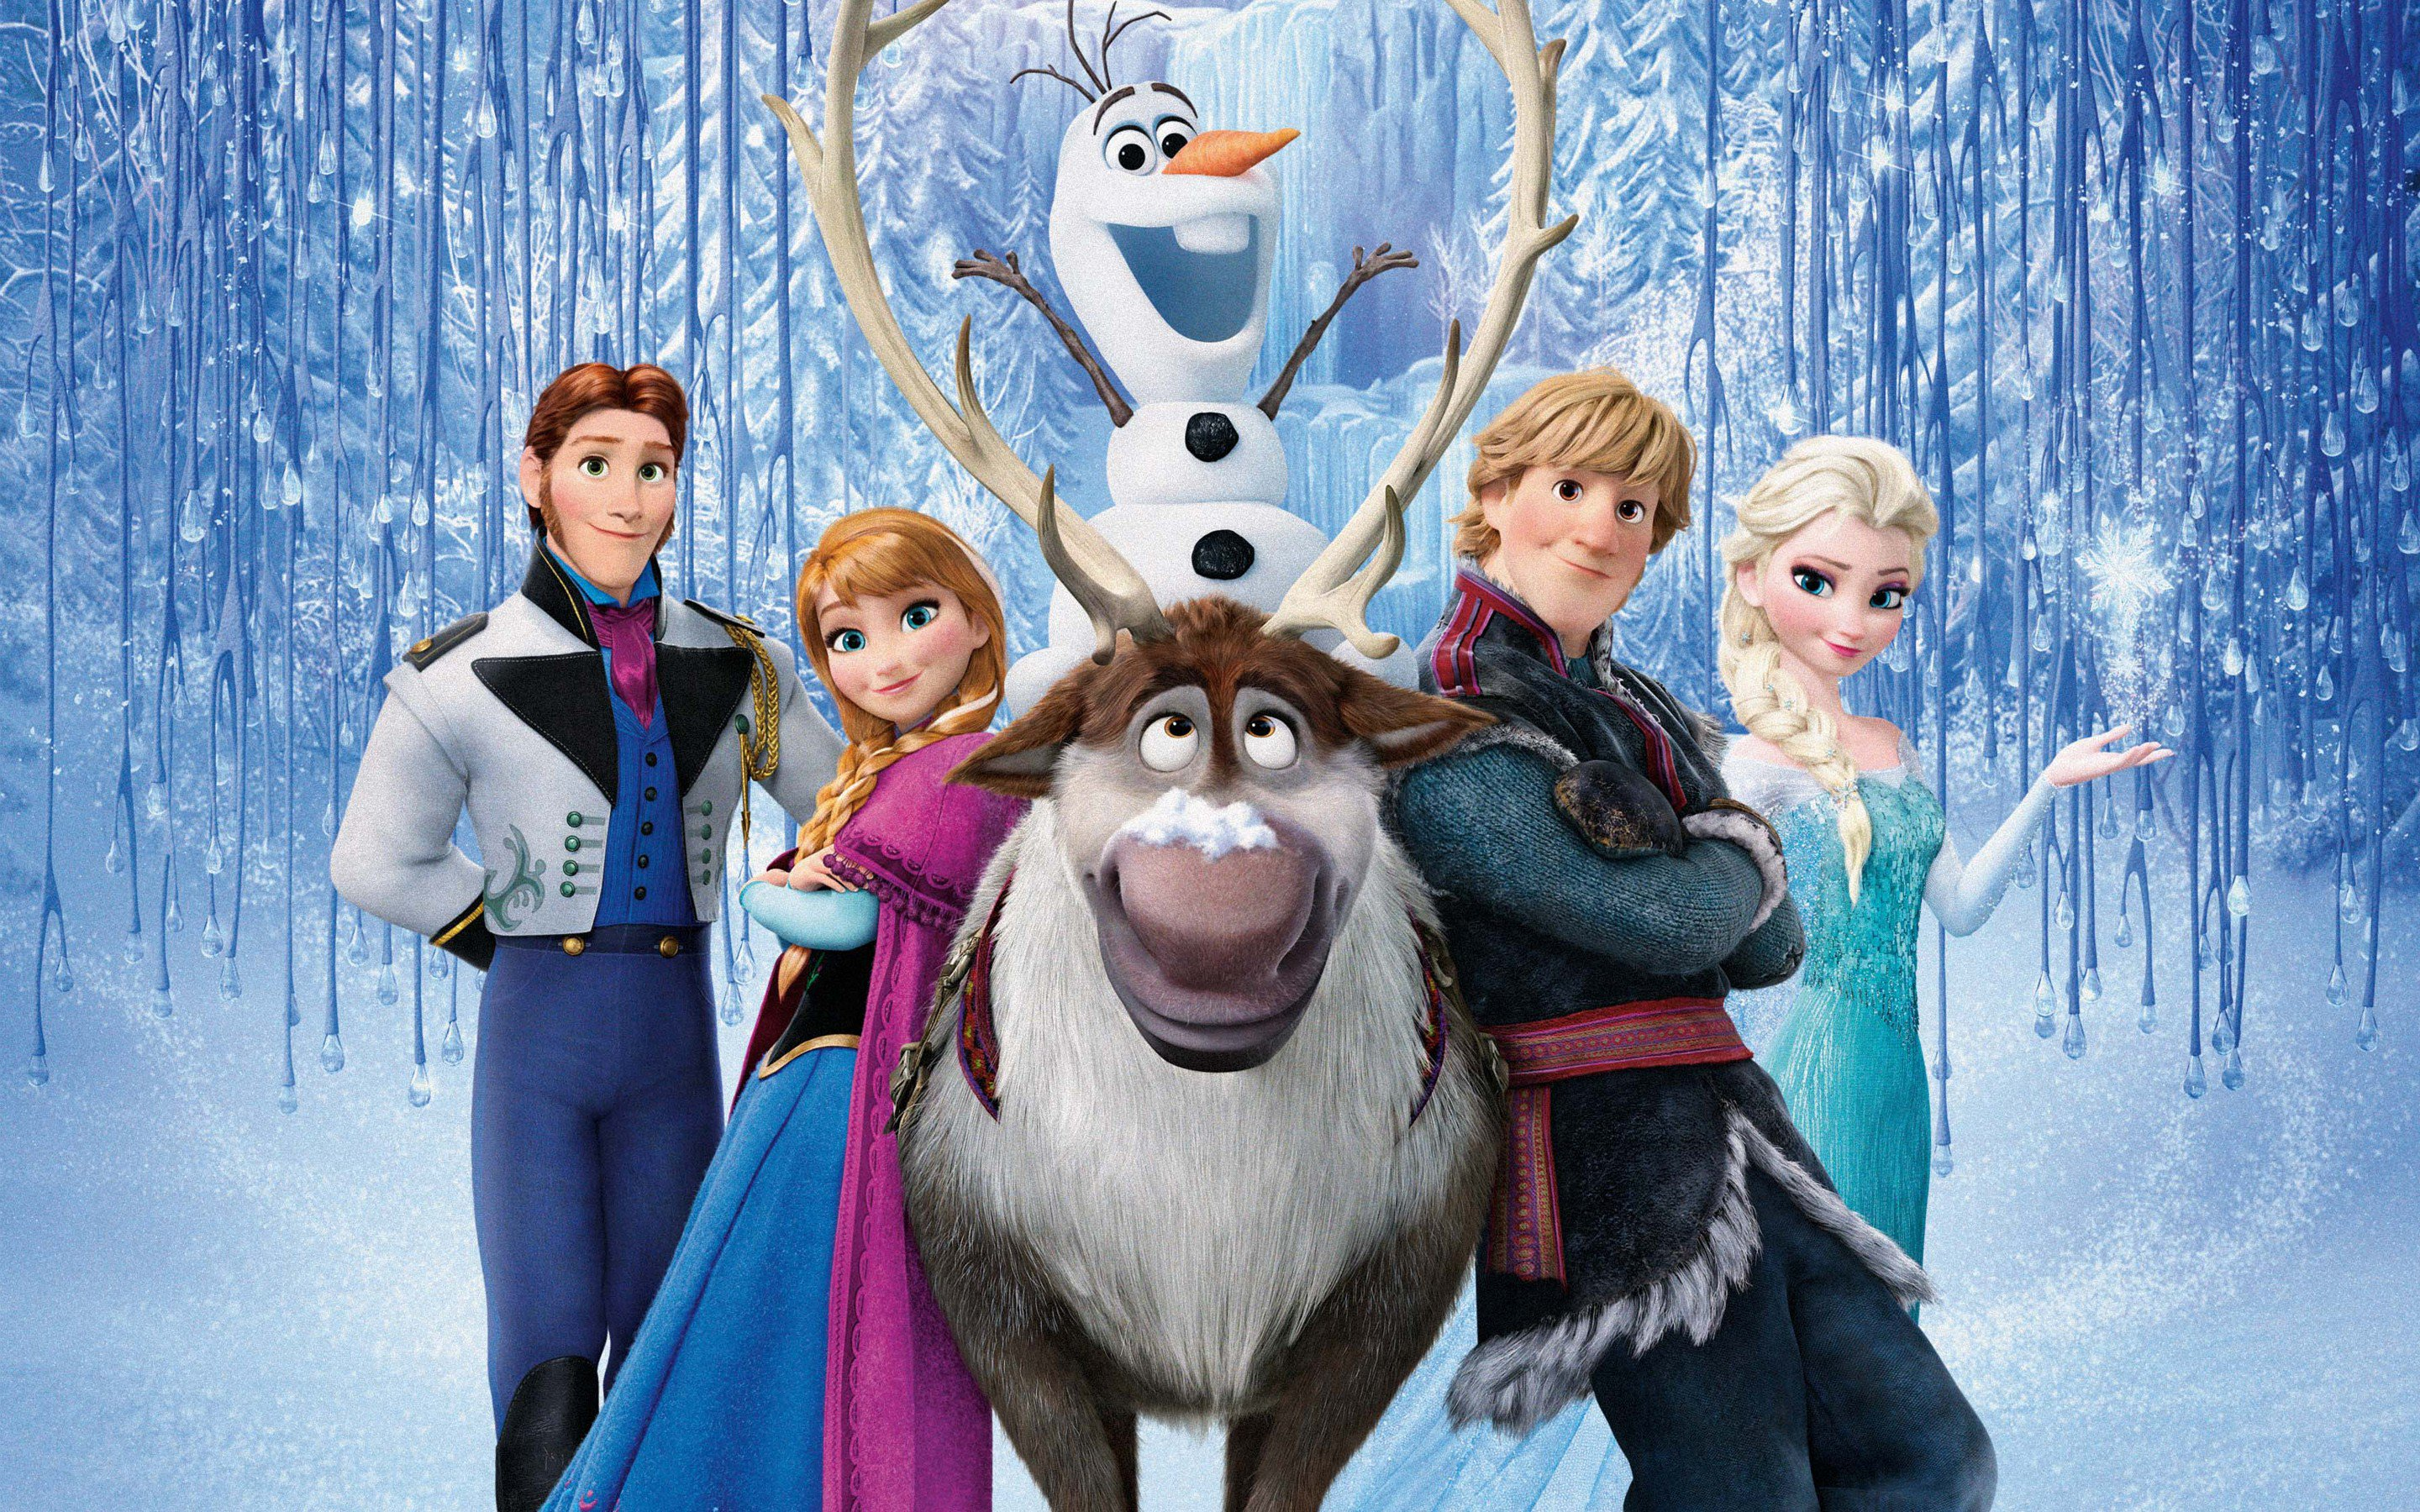 1280x1024 Hd Frozen 1280x1024 Resolution Hd 4k Wallpapers Images